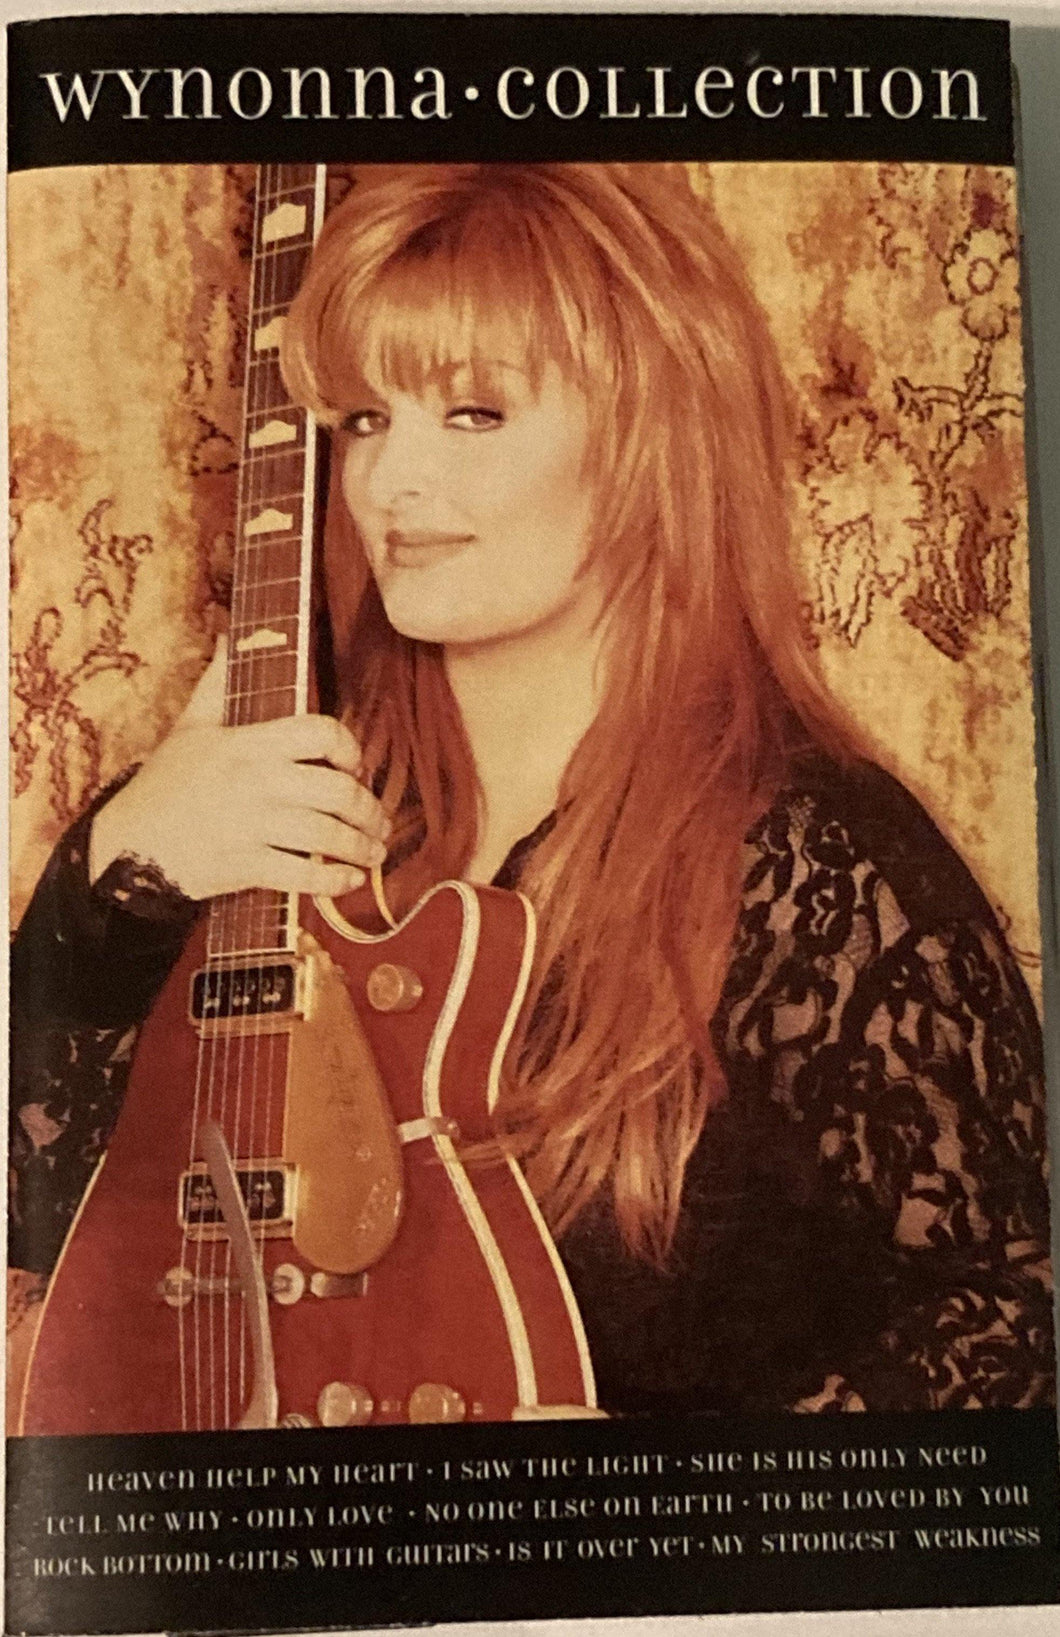 Wynonna Judd - Collection Cassette NM